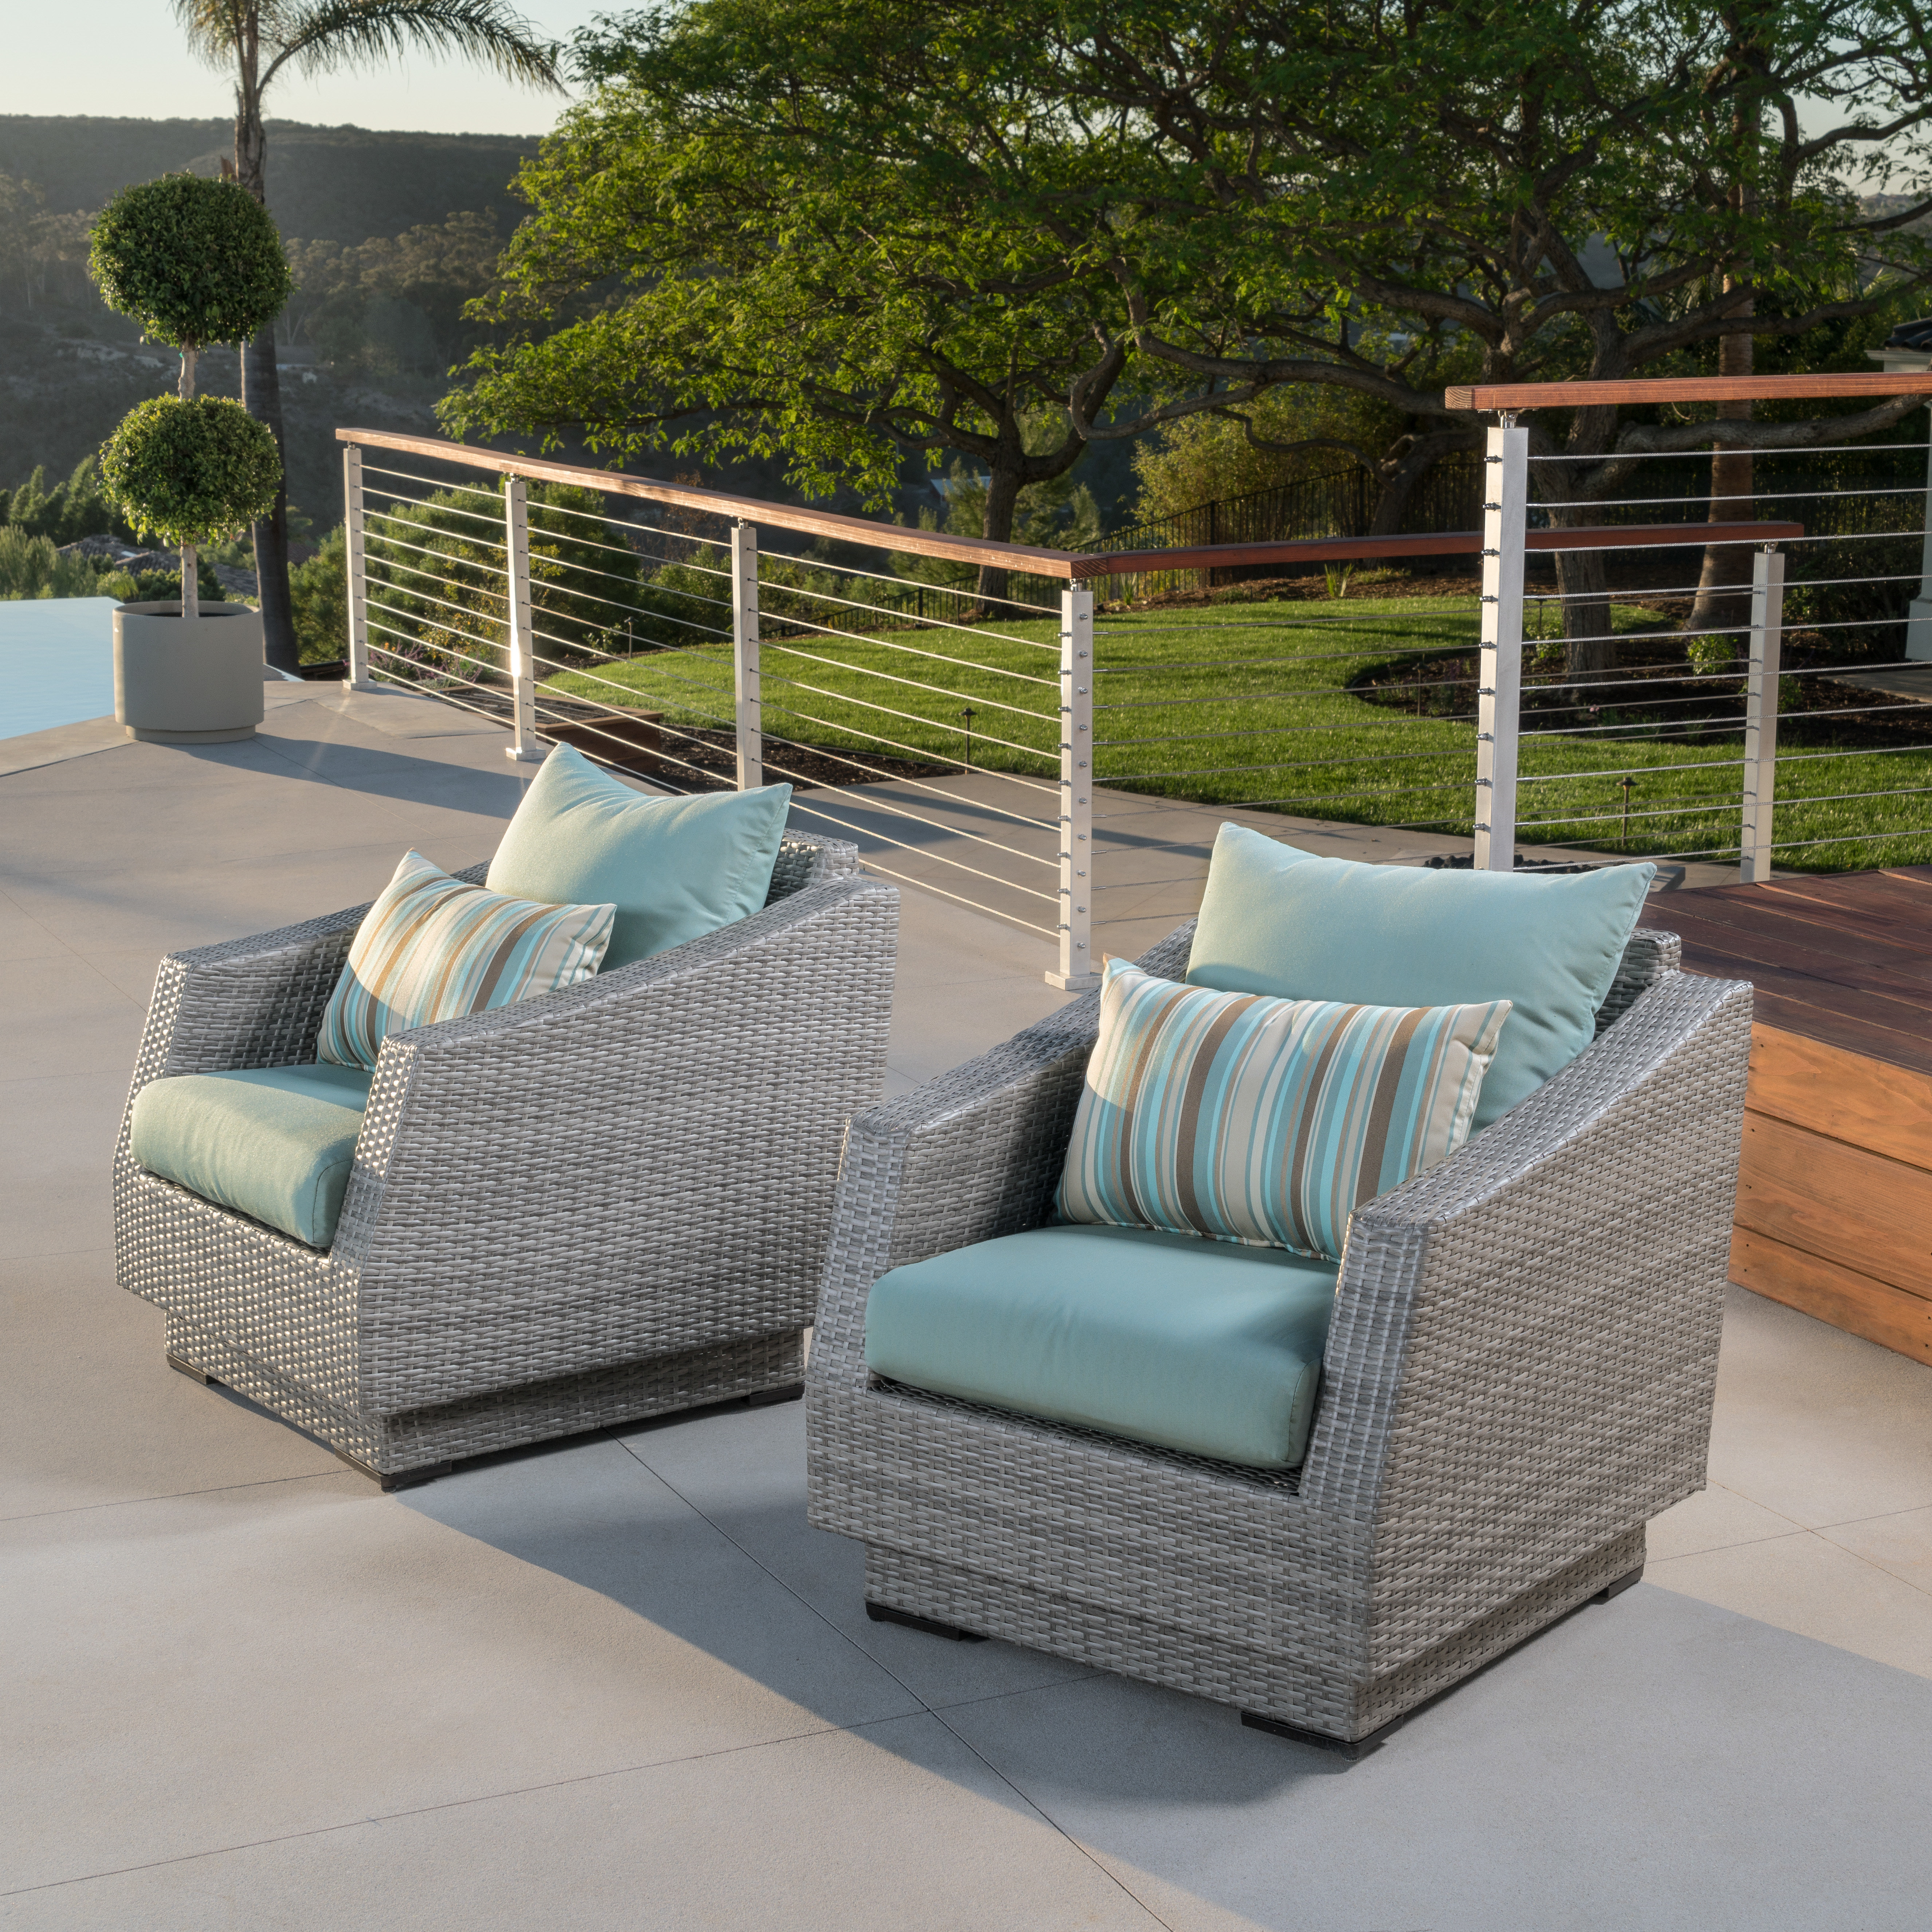 Most Recent Castelli Patio Chair With Acrylic Or Sunbrella Cushions For Castelli Patio Sofas With Sunbrella Cushions (View 15 of 20)